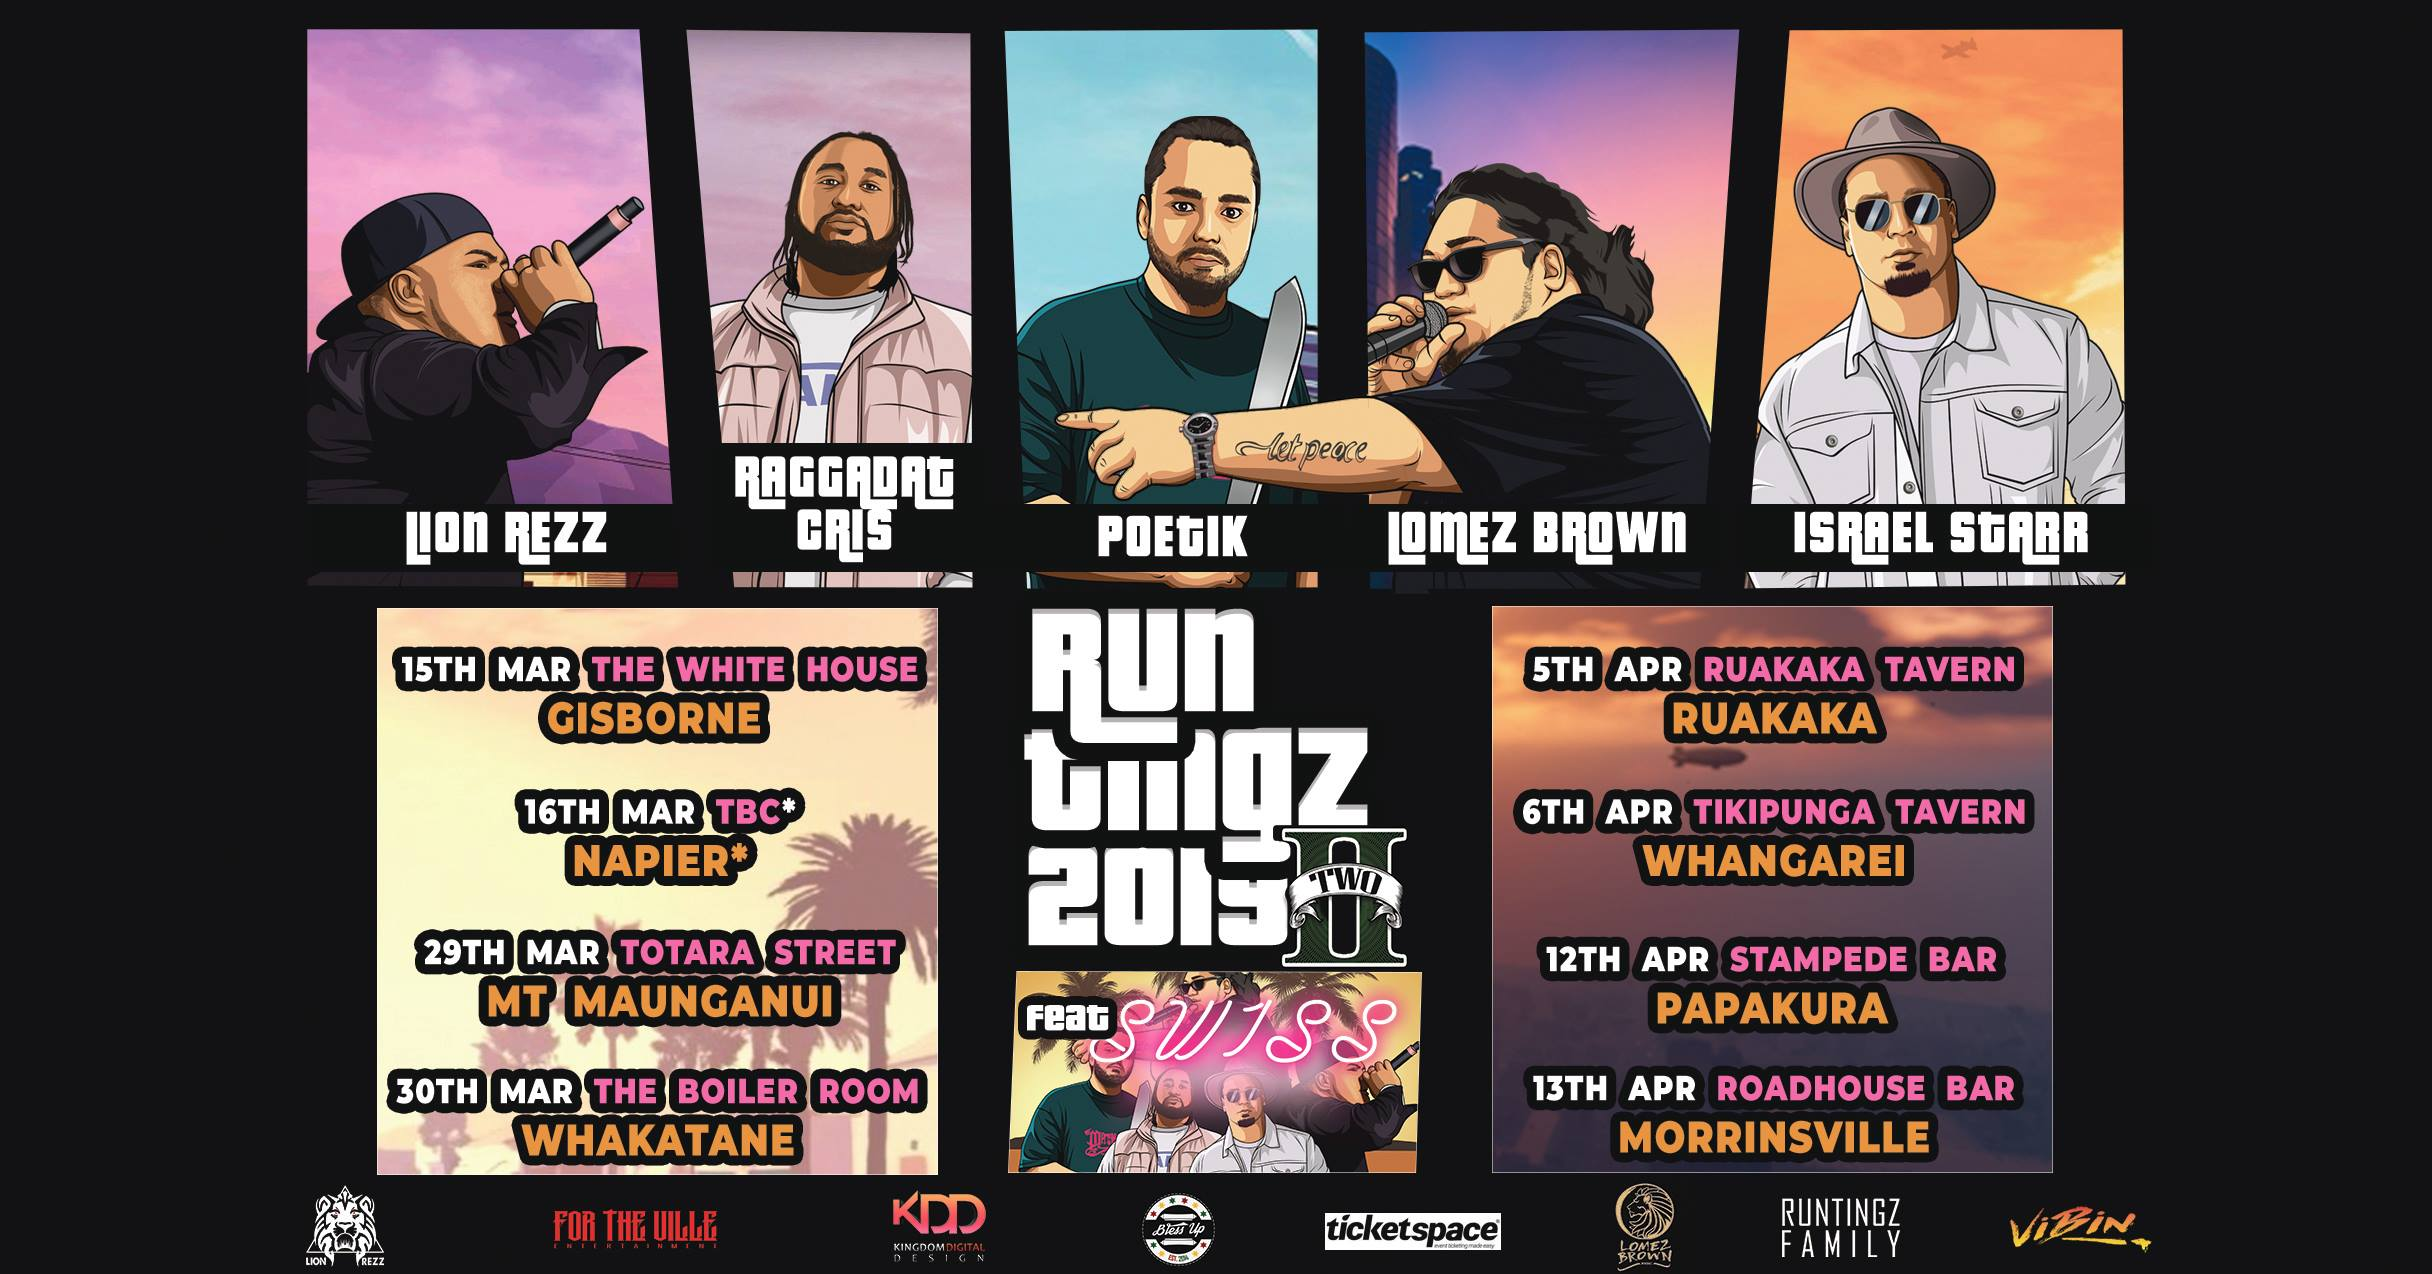 Tickets for RUNTINGZ 2019 NZ TOUR ft. SWISS - Papakura in Papakura from Ticketspace